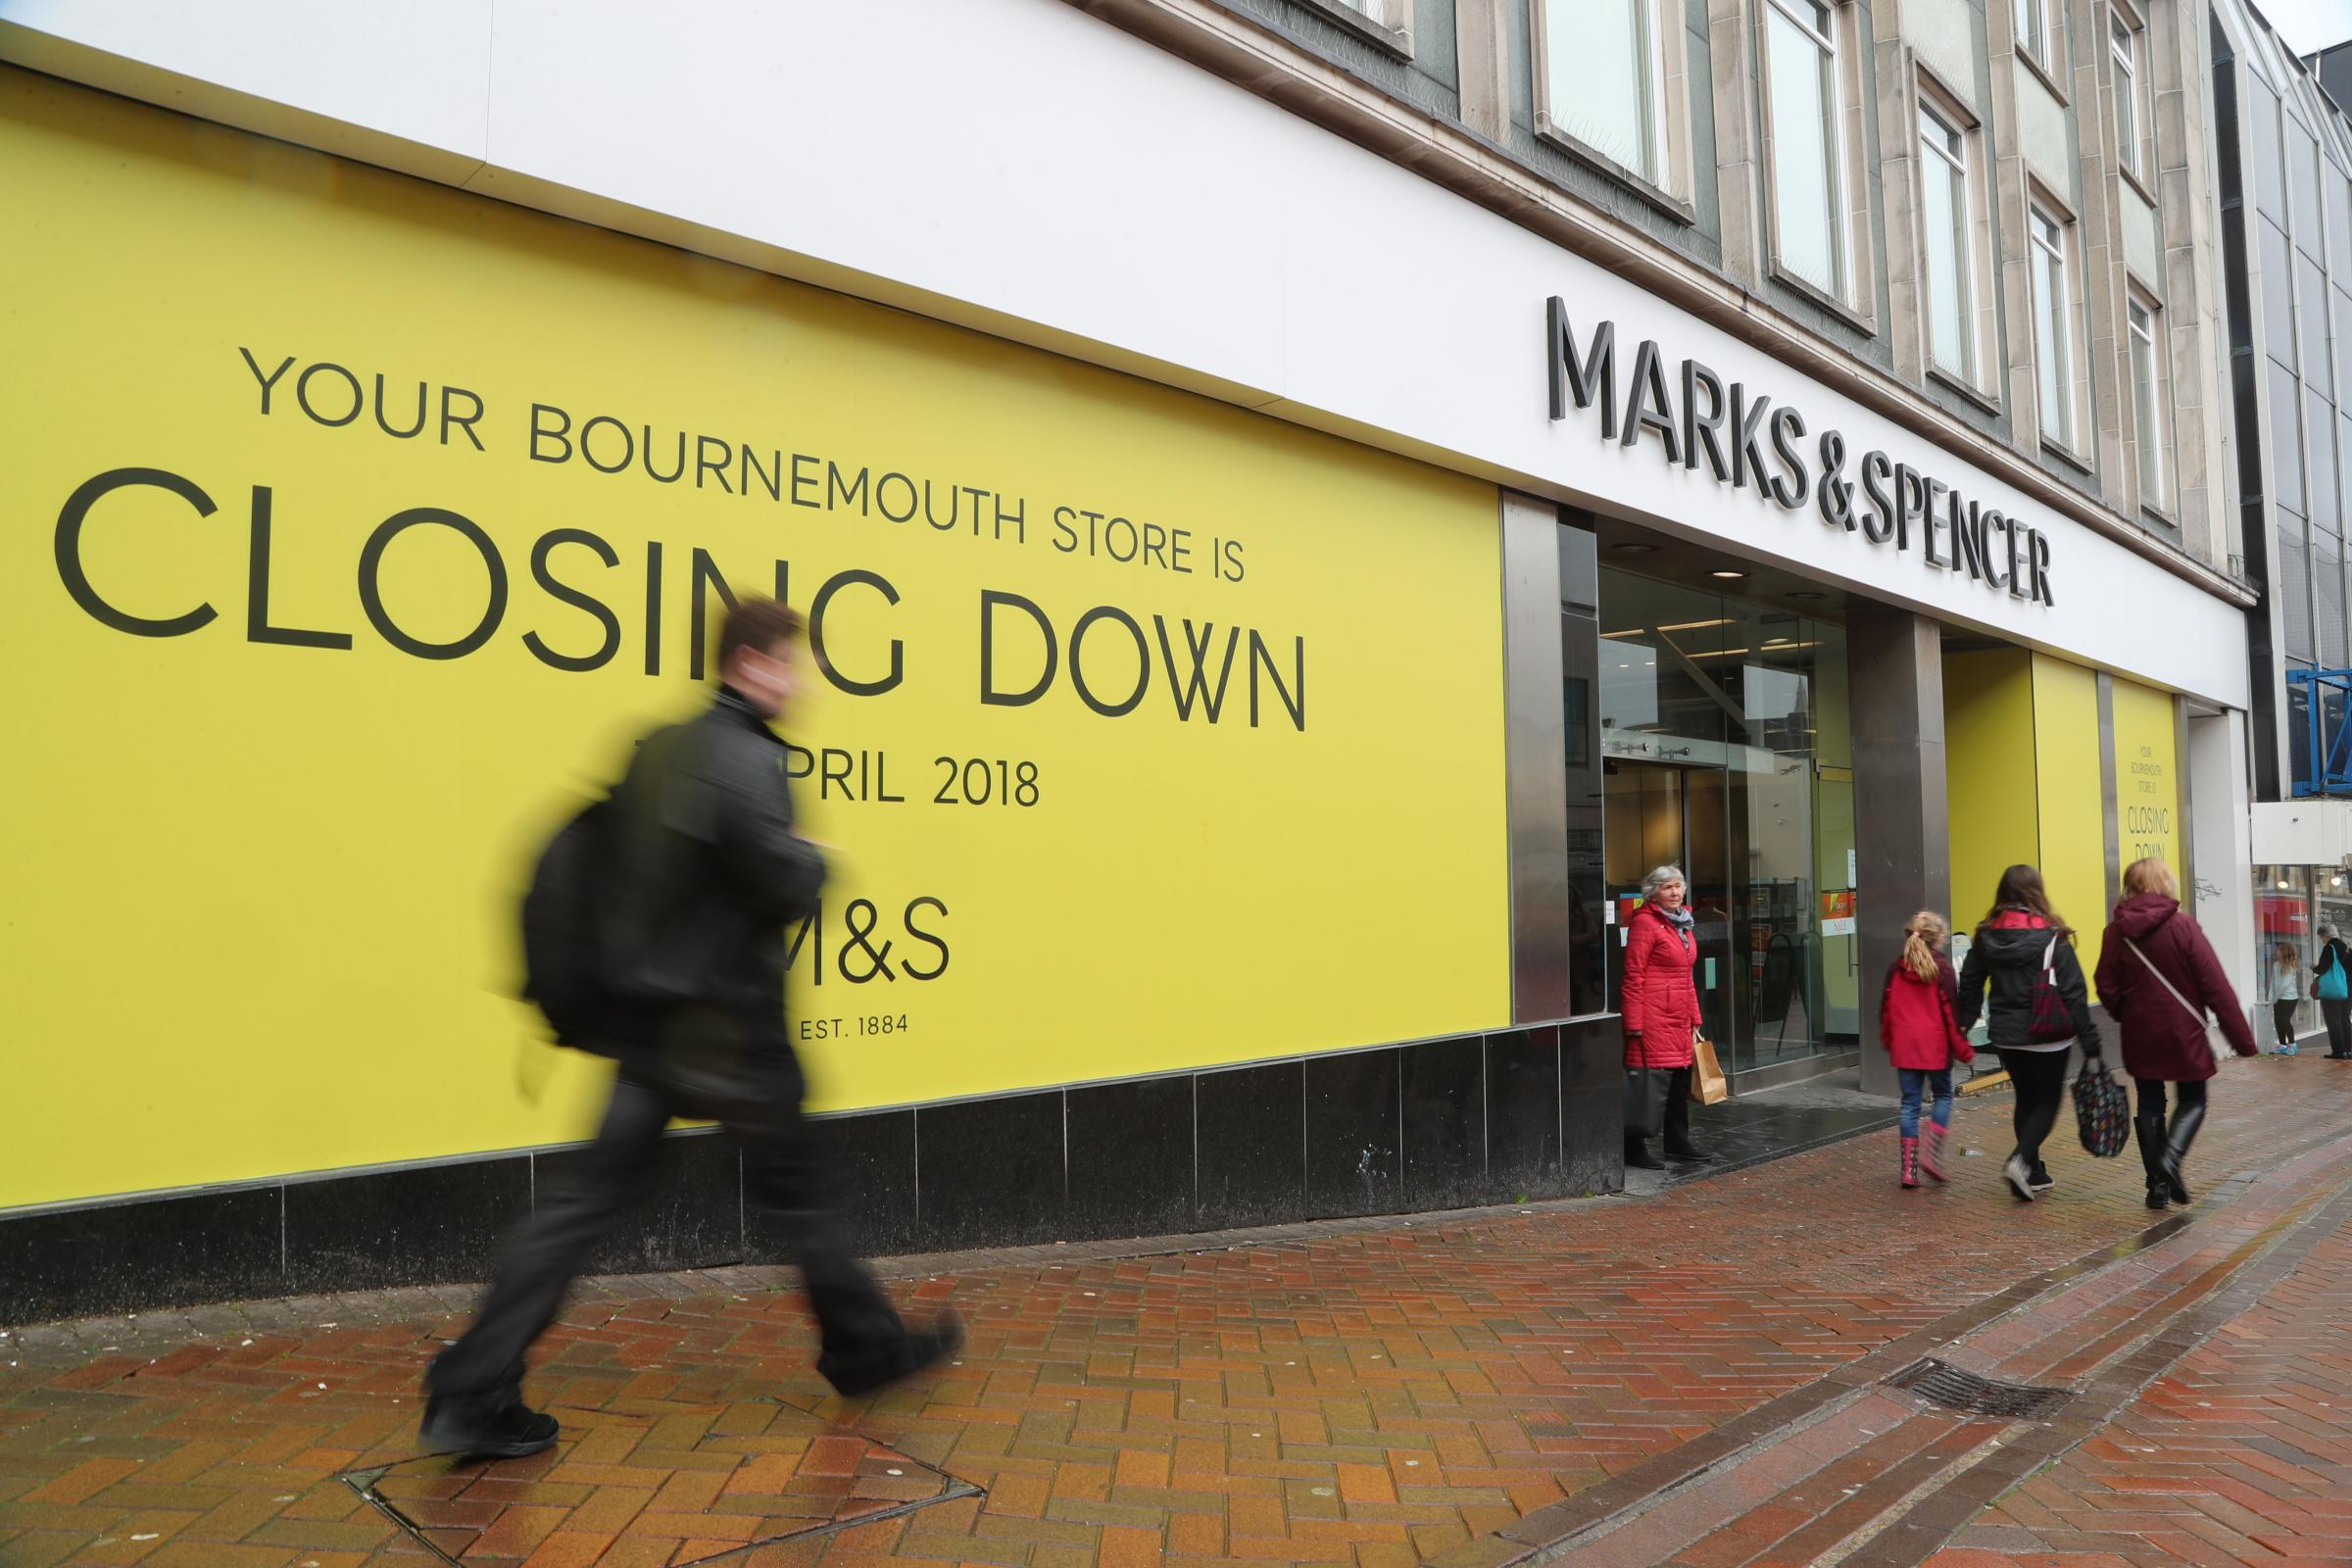 Marks & Spencer look to close more than 100 stores